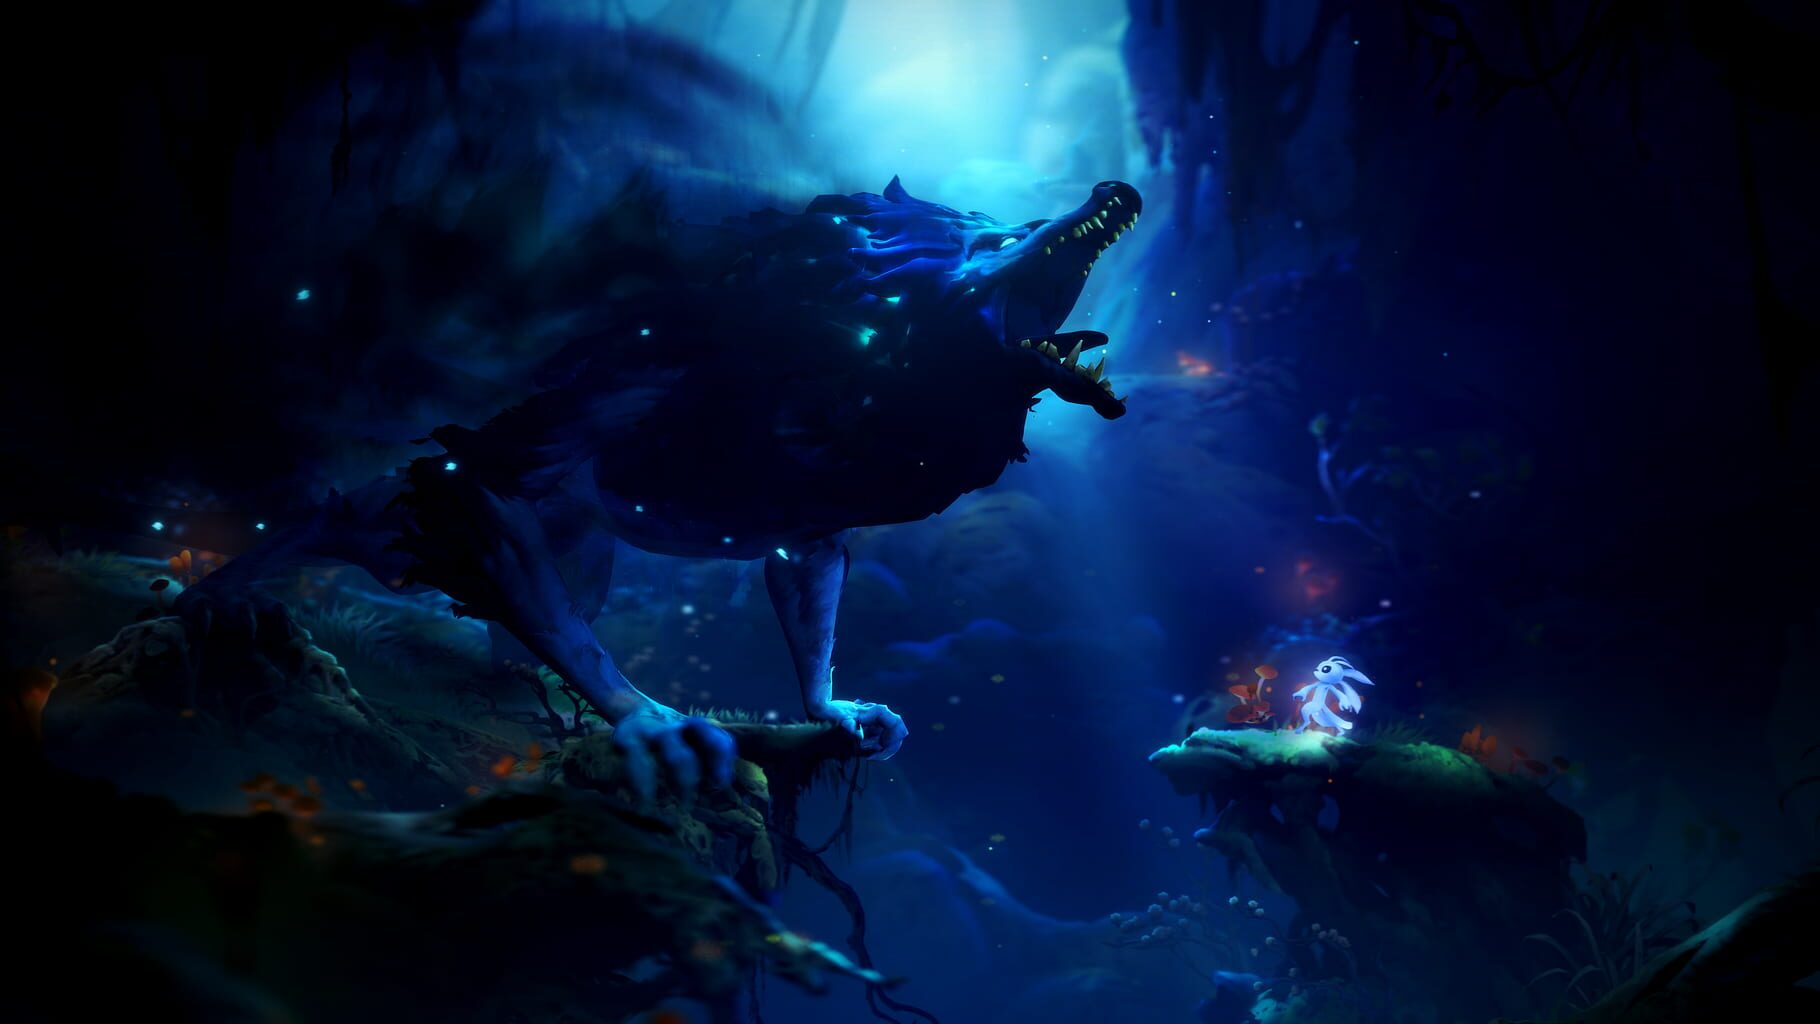 Gameplay Screenshot from Ori and the Will of the Wisps